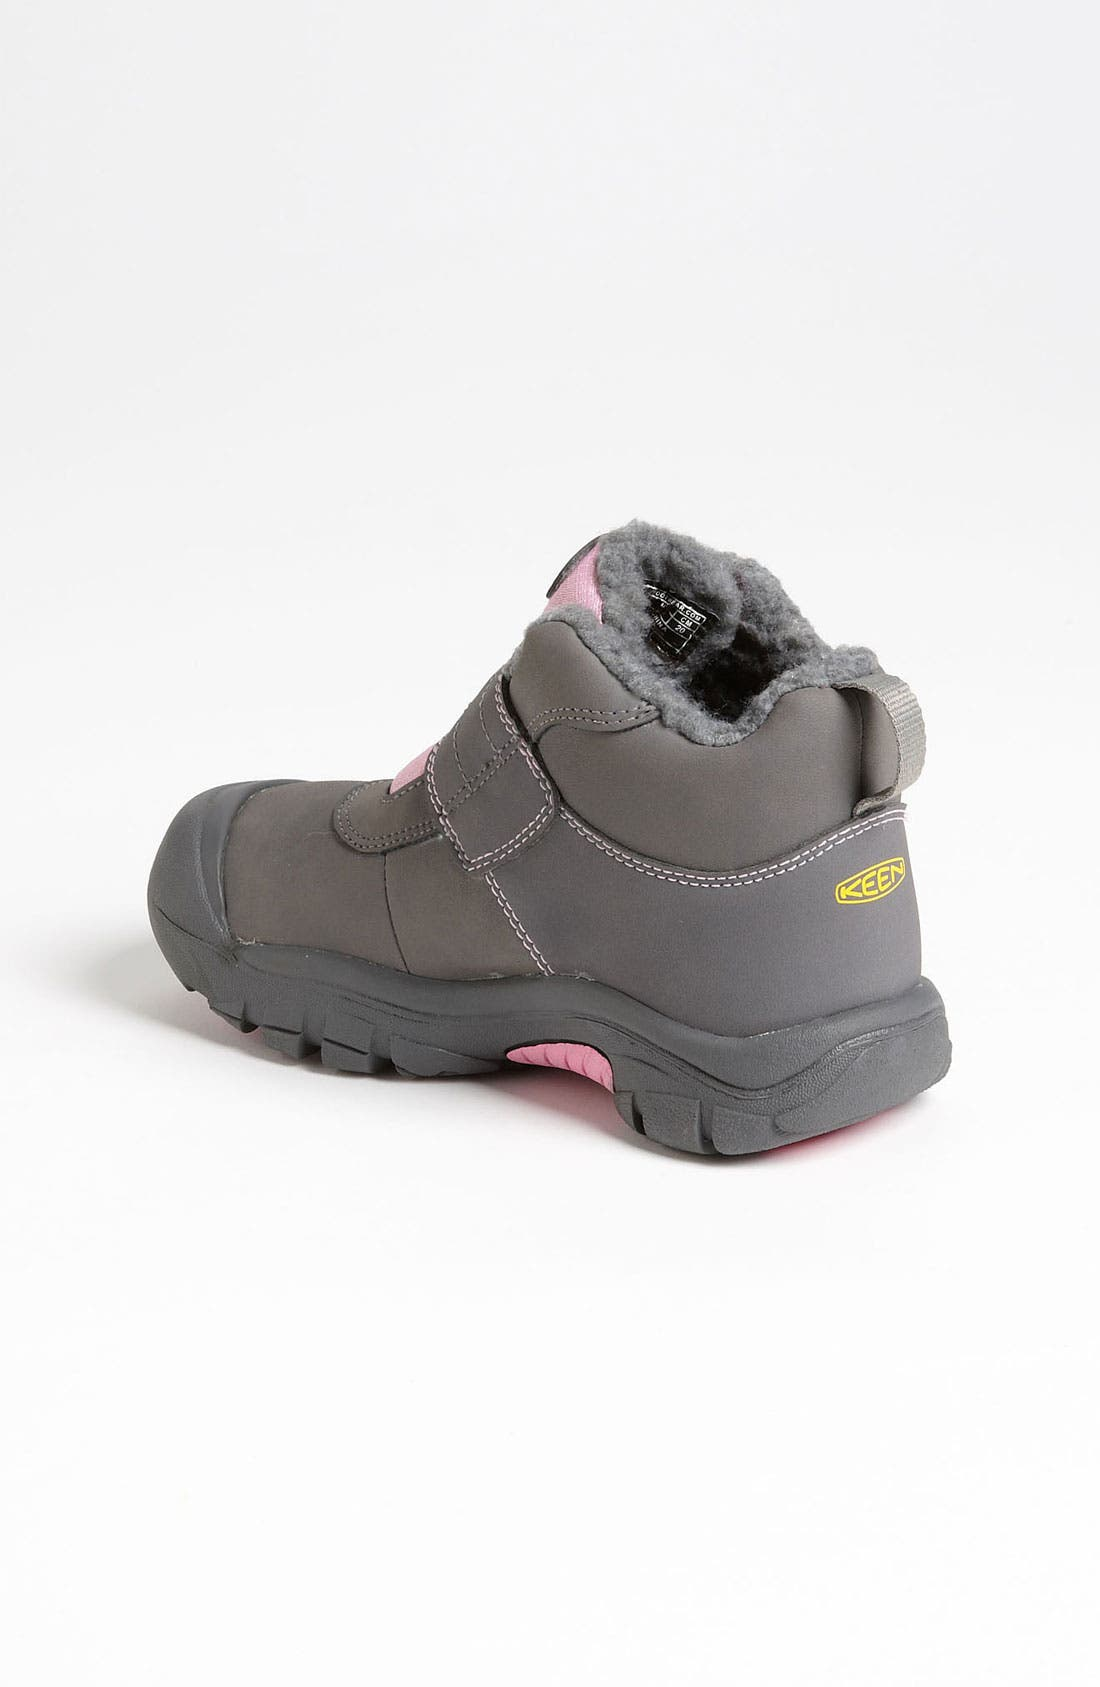 Alternate Image 2  - Keen 'Kalamazoo Mid' Waterproof Boot (Toddler, Little Kid & Big Kid)